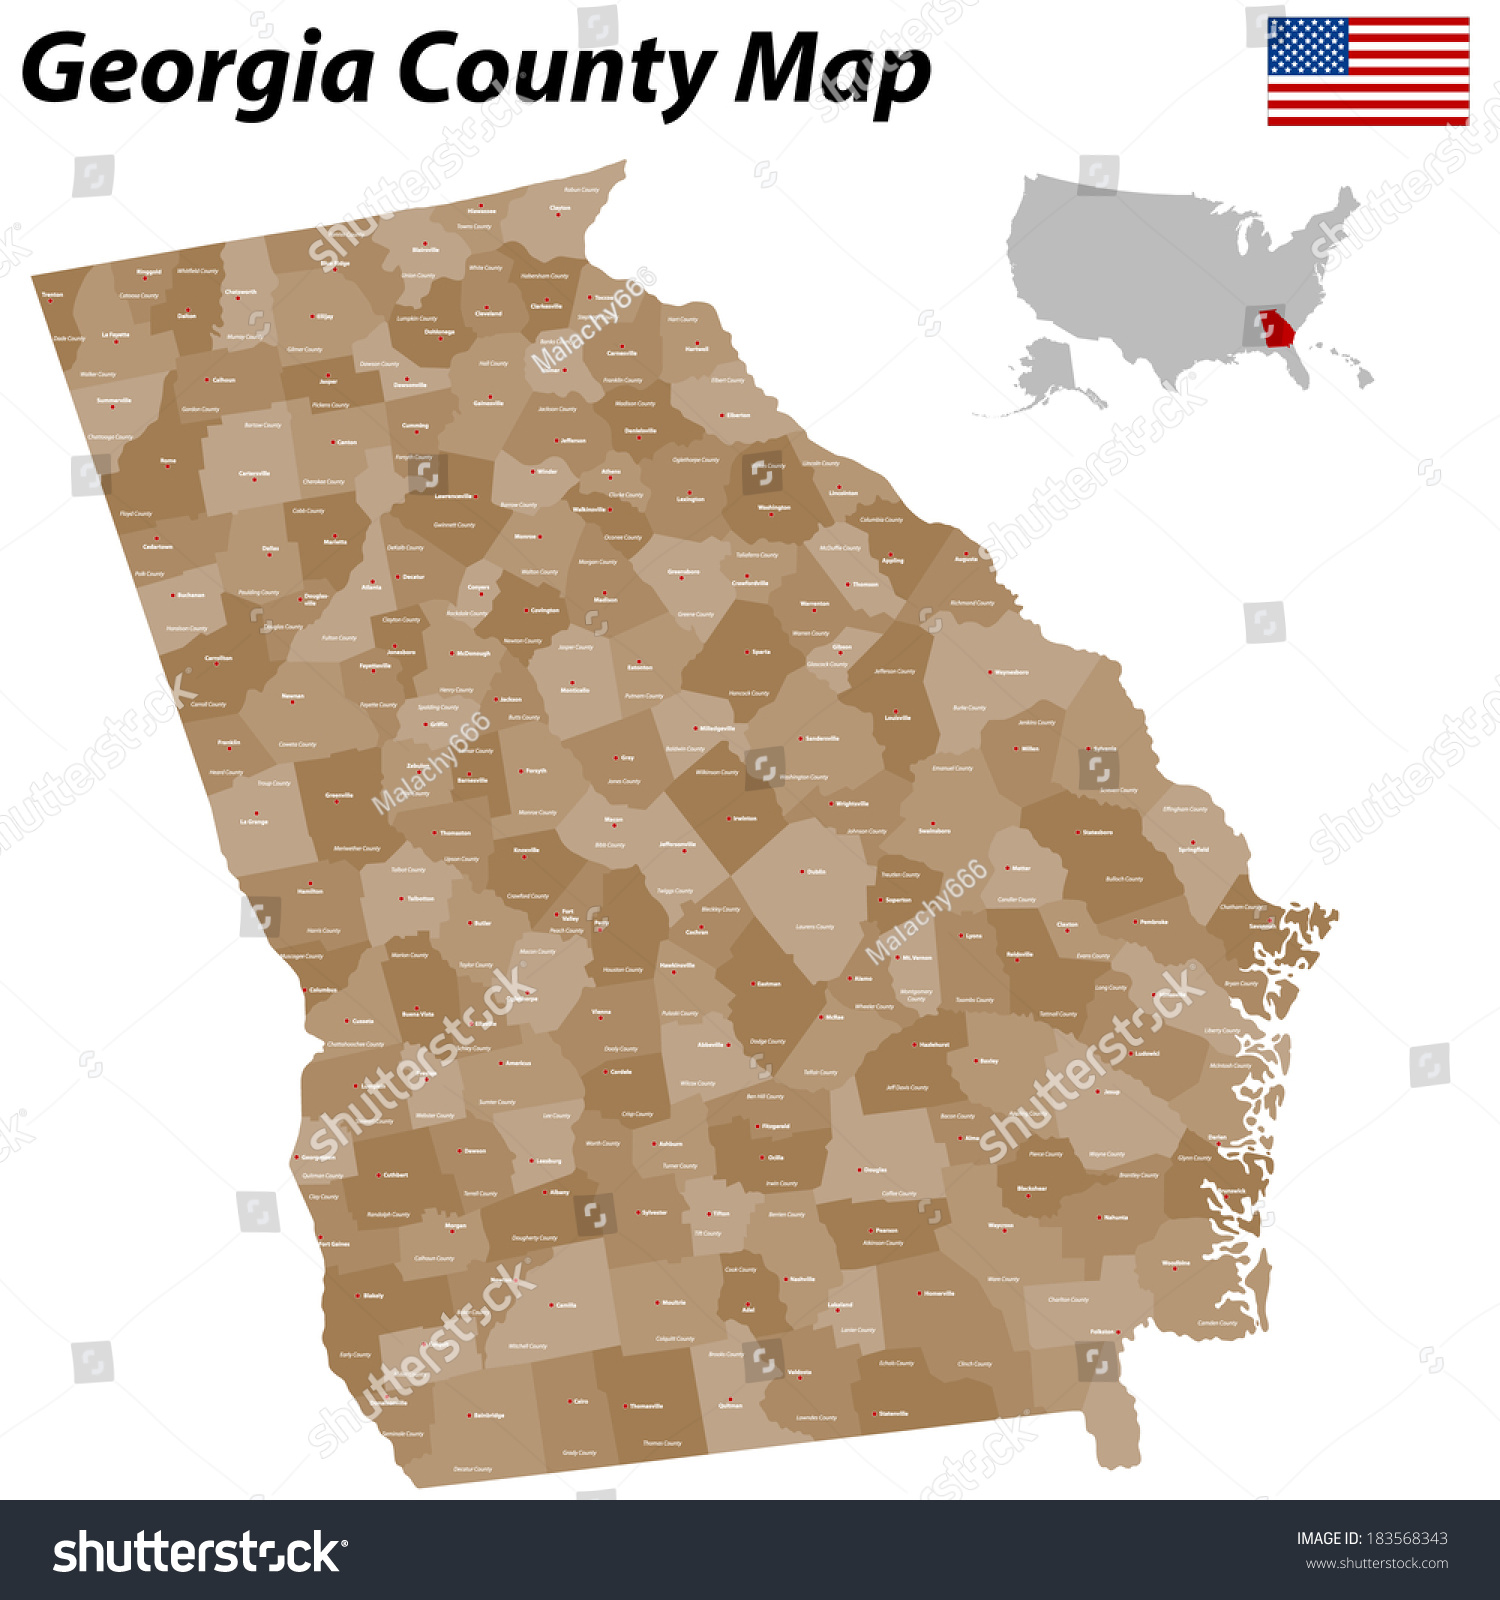 Map Of Counties In Georgia With Cities.Detailed Map State Georgia All Counties Stock Vector Royalty Free